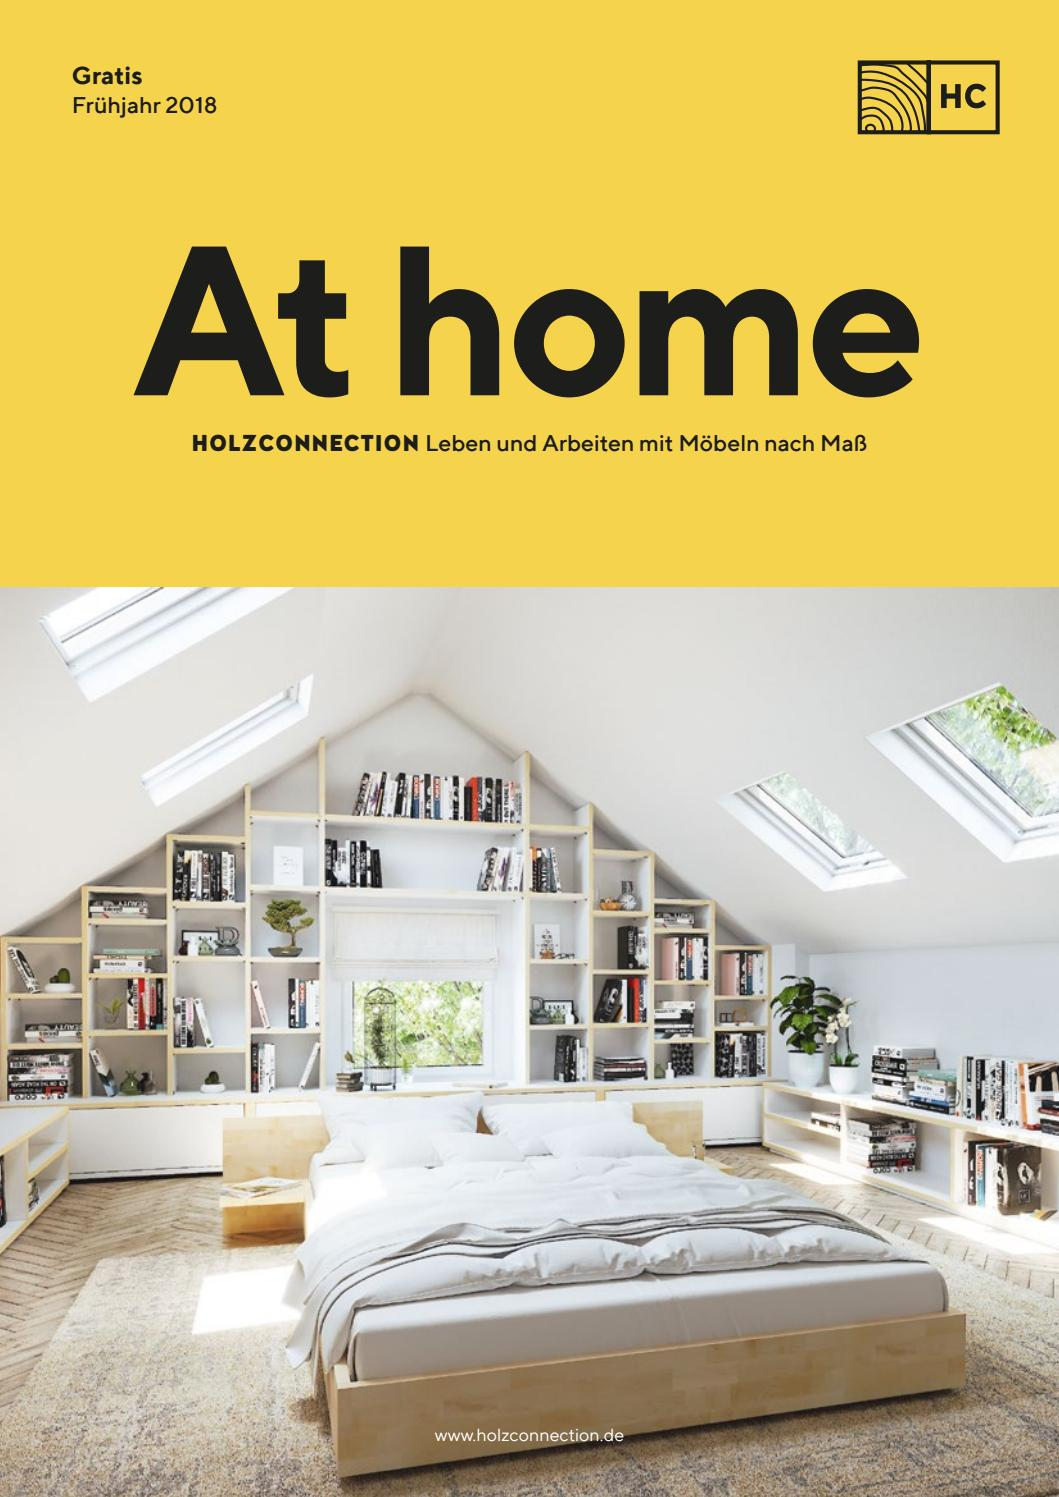 Massivholzbett Regensburg At Home Holzconnection Magazin By Holzconnection Issuu